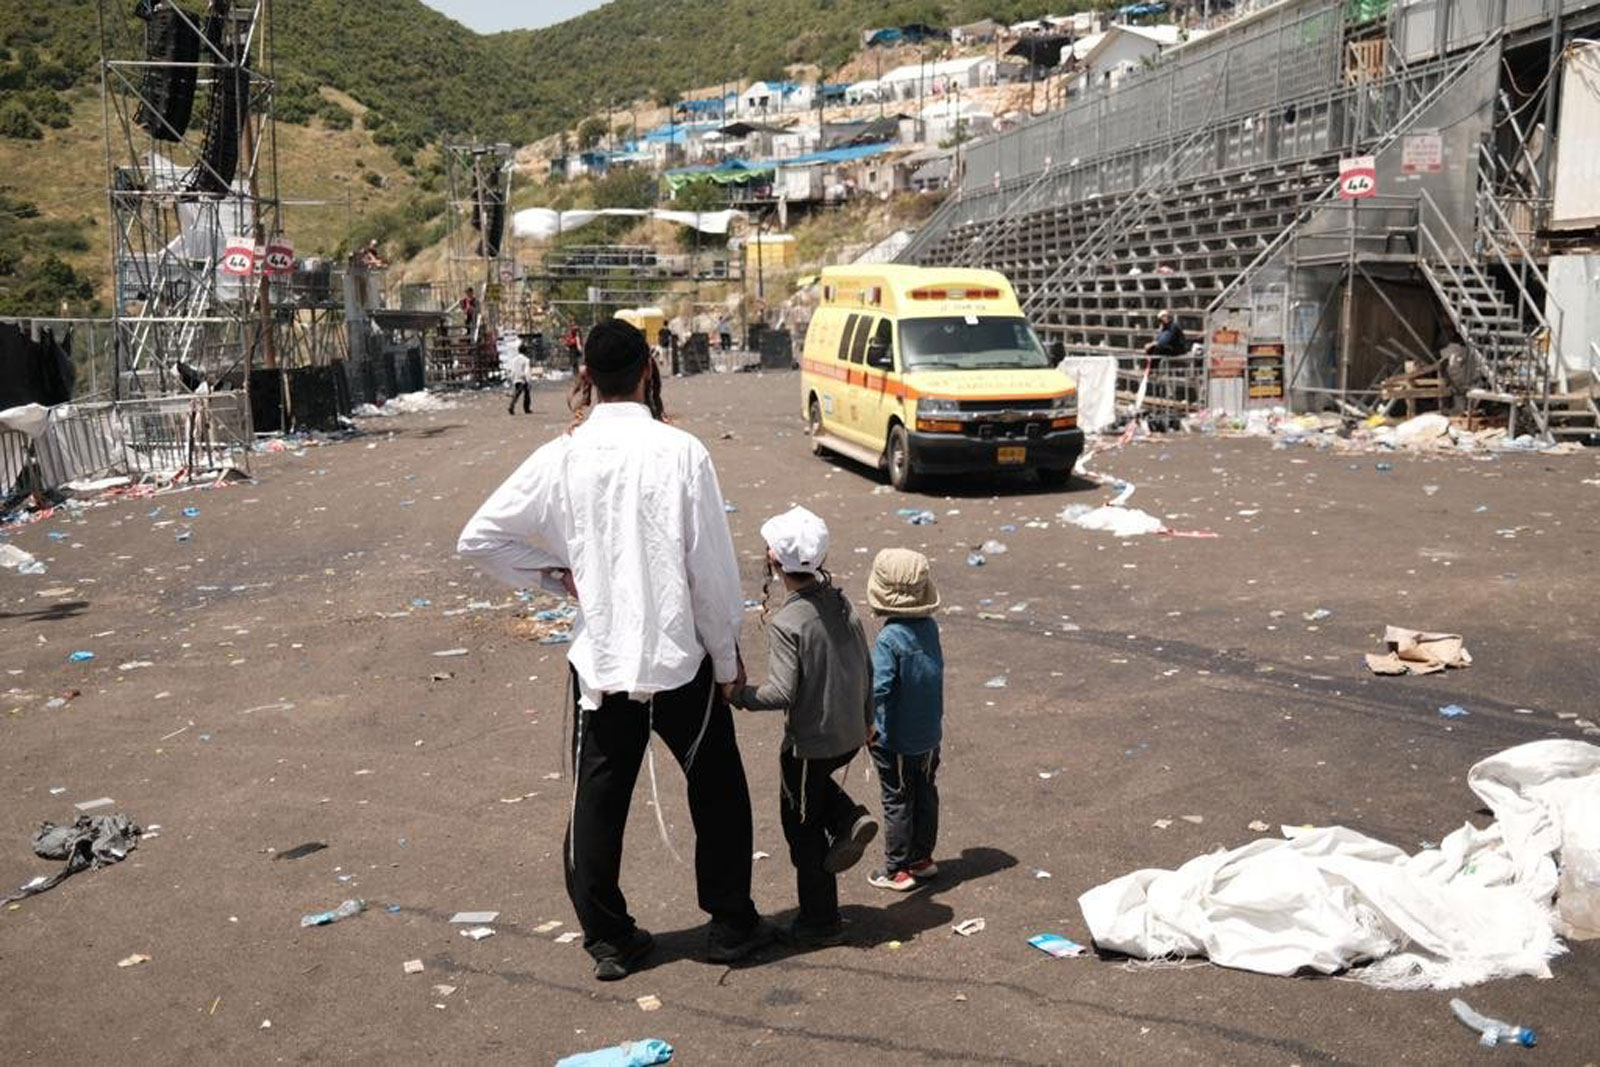 A family surveys the scene of the tragedy at Mount Meron on Friday.